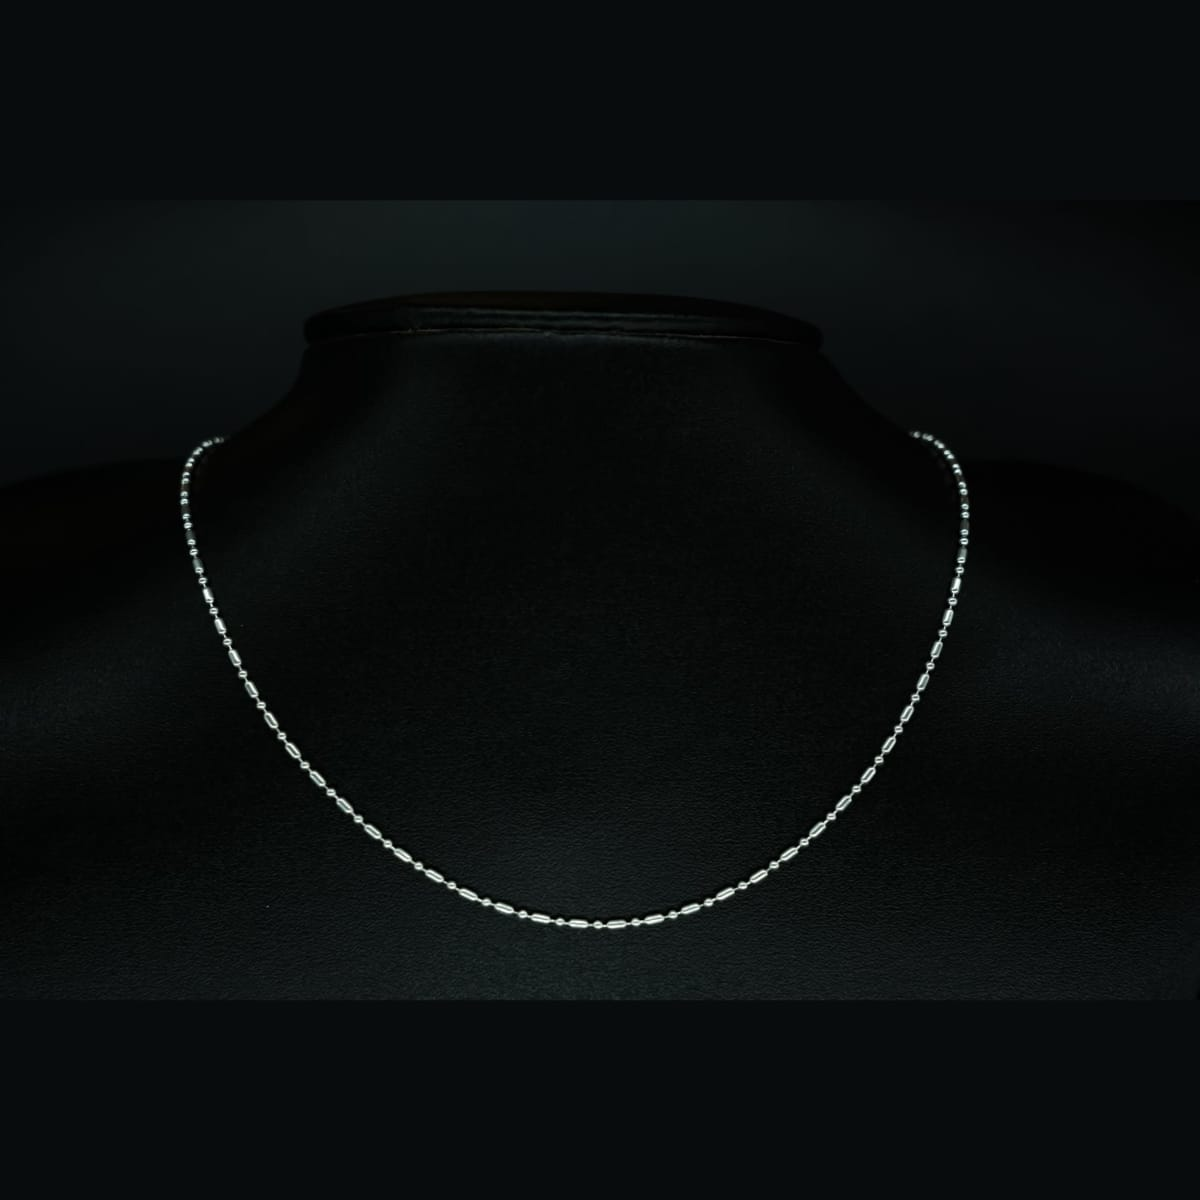 Droplet Chain 925 Silver